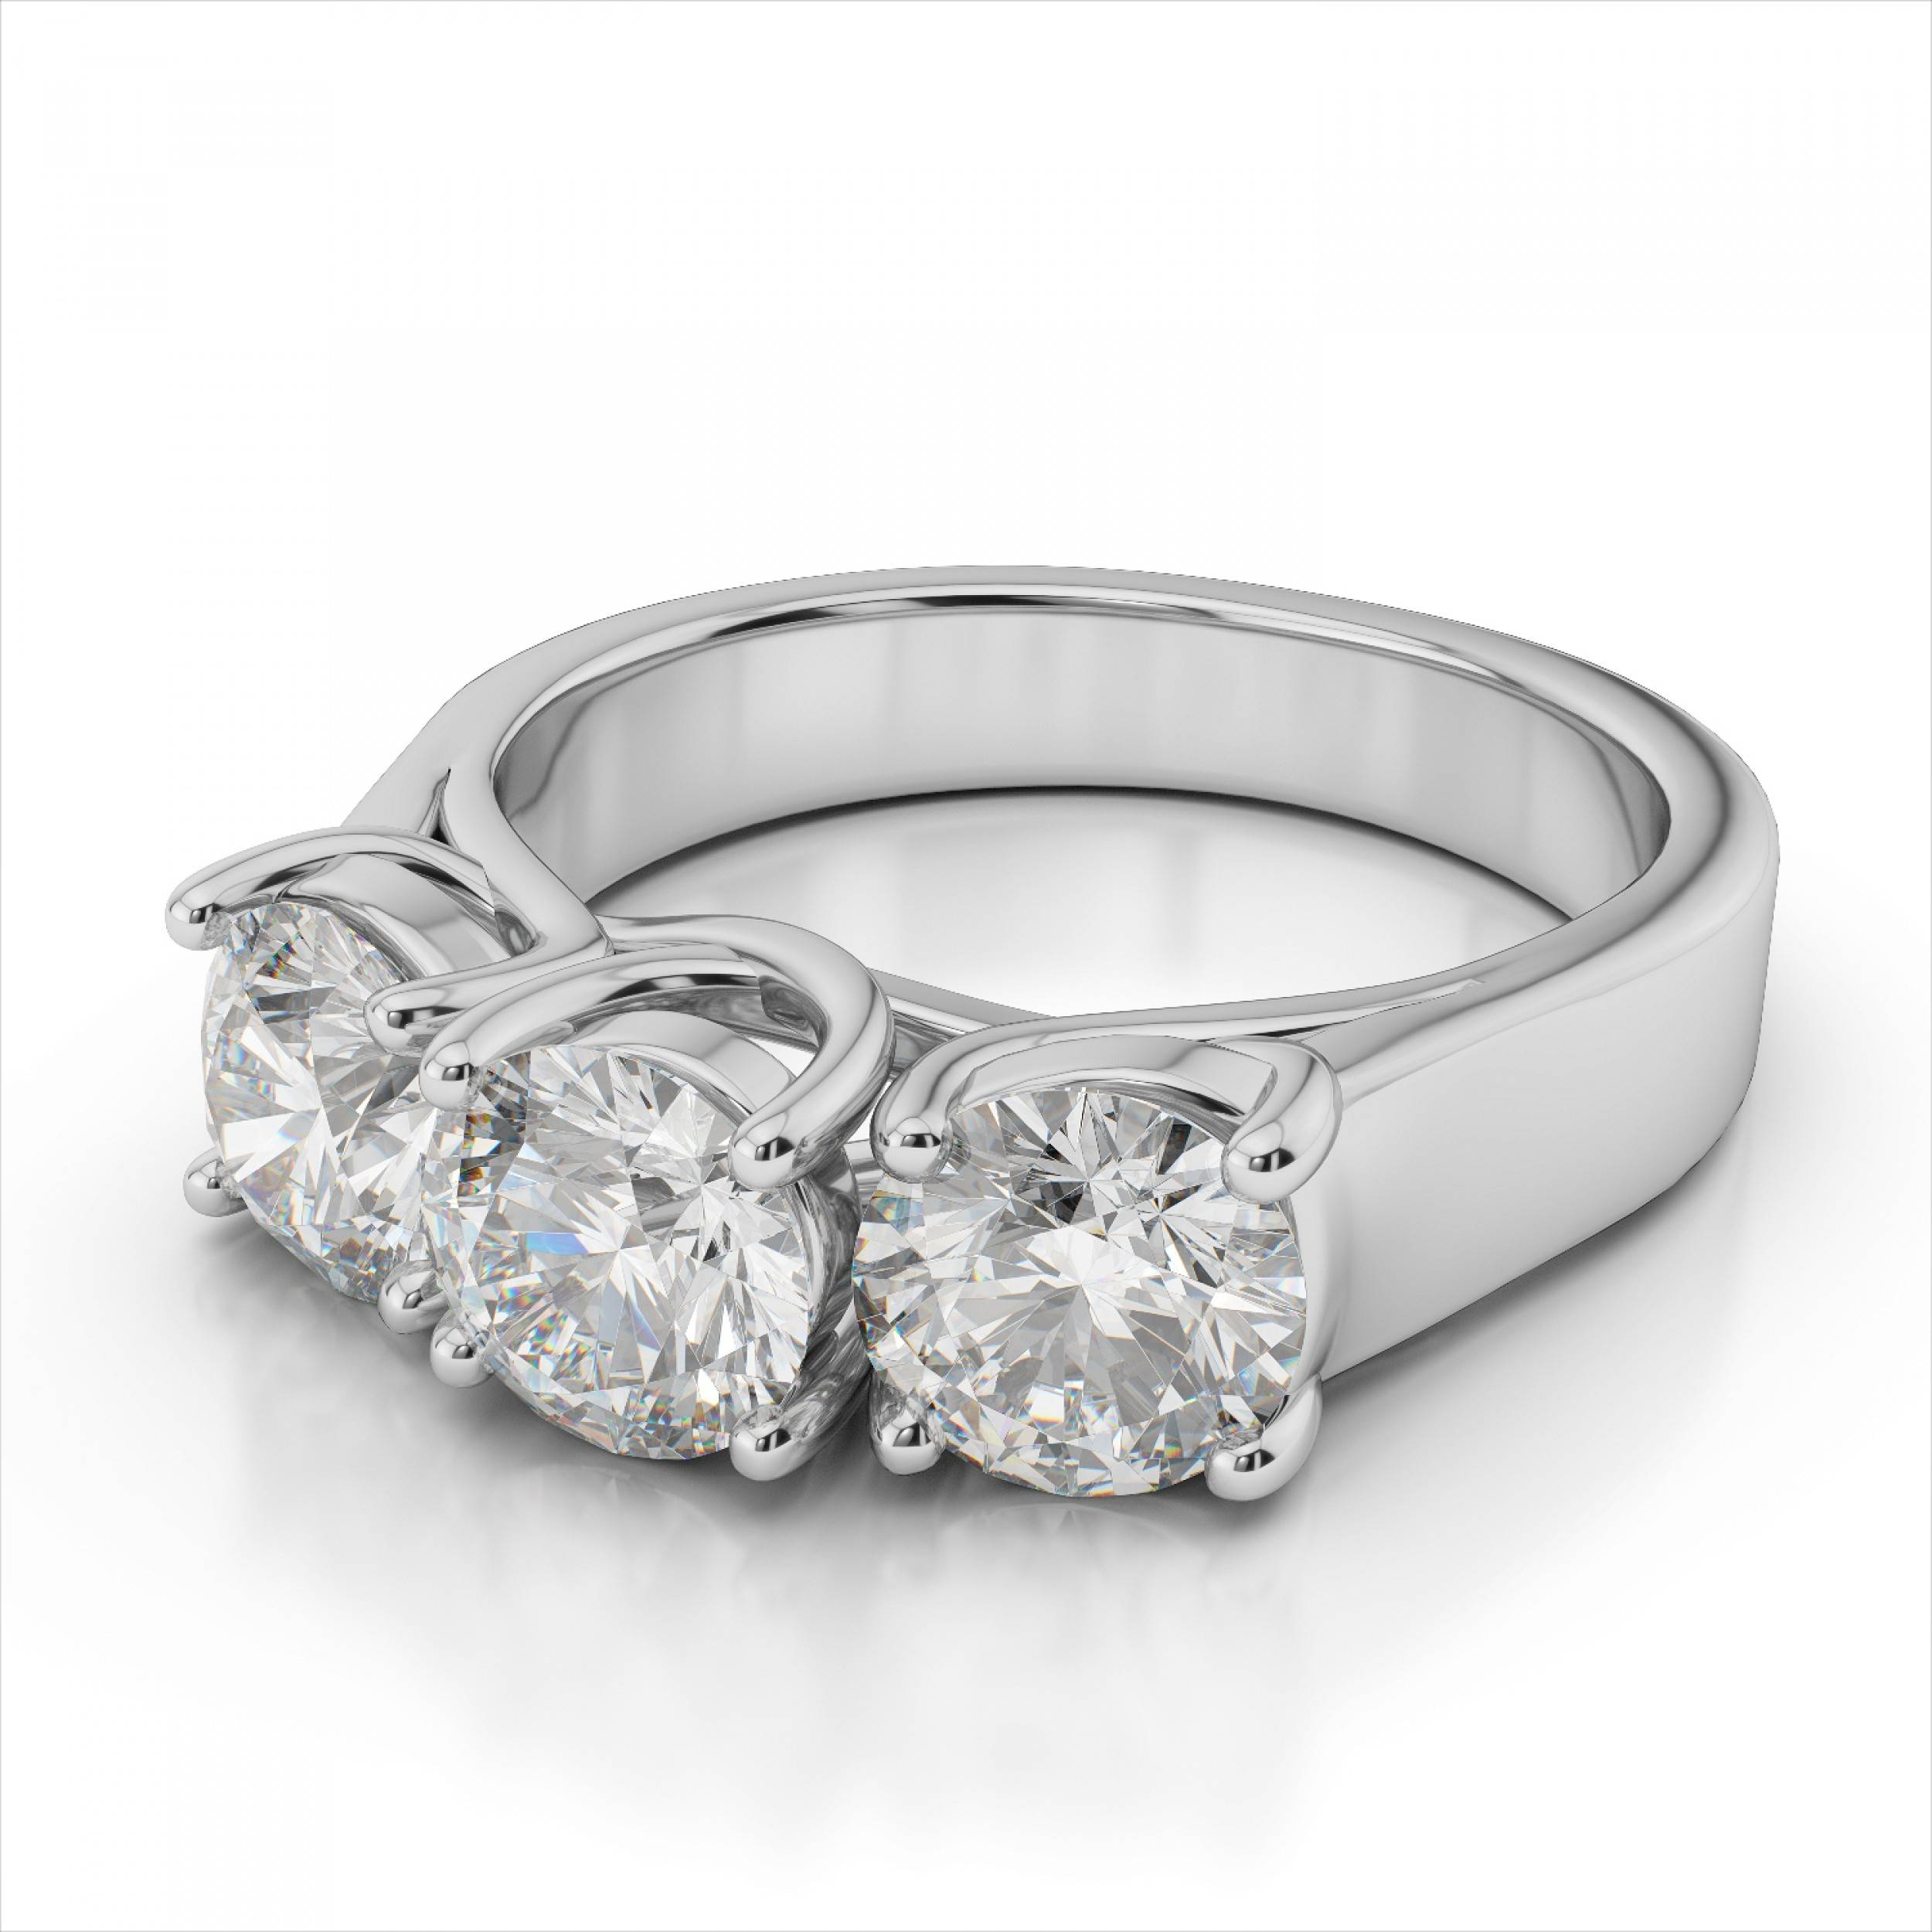 Three Stone Anniversary Diamond Rings | Wedding, Promise, Diamond Throughout Most Up To Date 3 Stone Anniversary Rings (View 16 of 25)